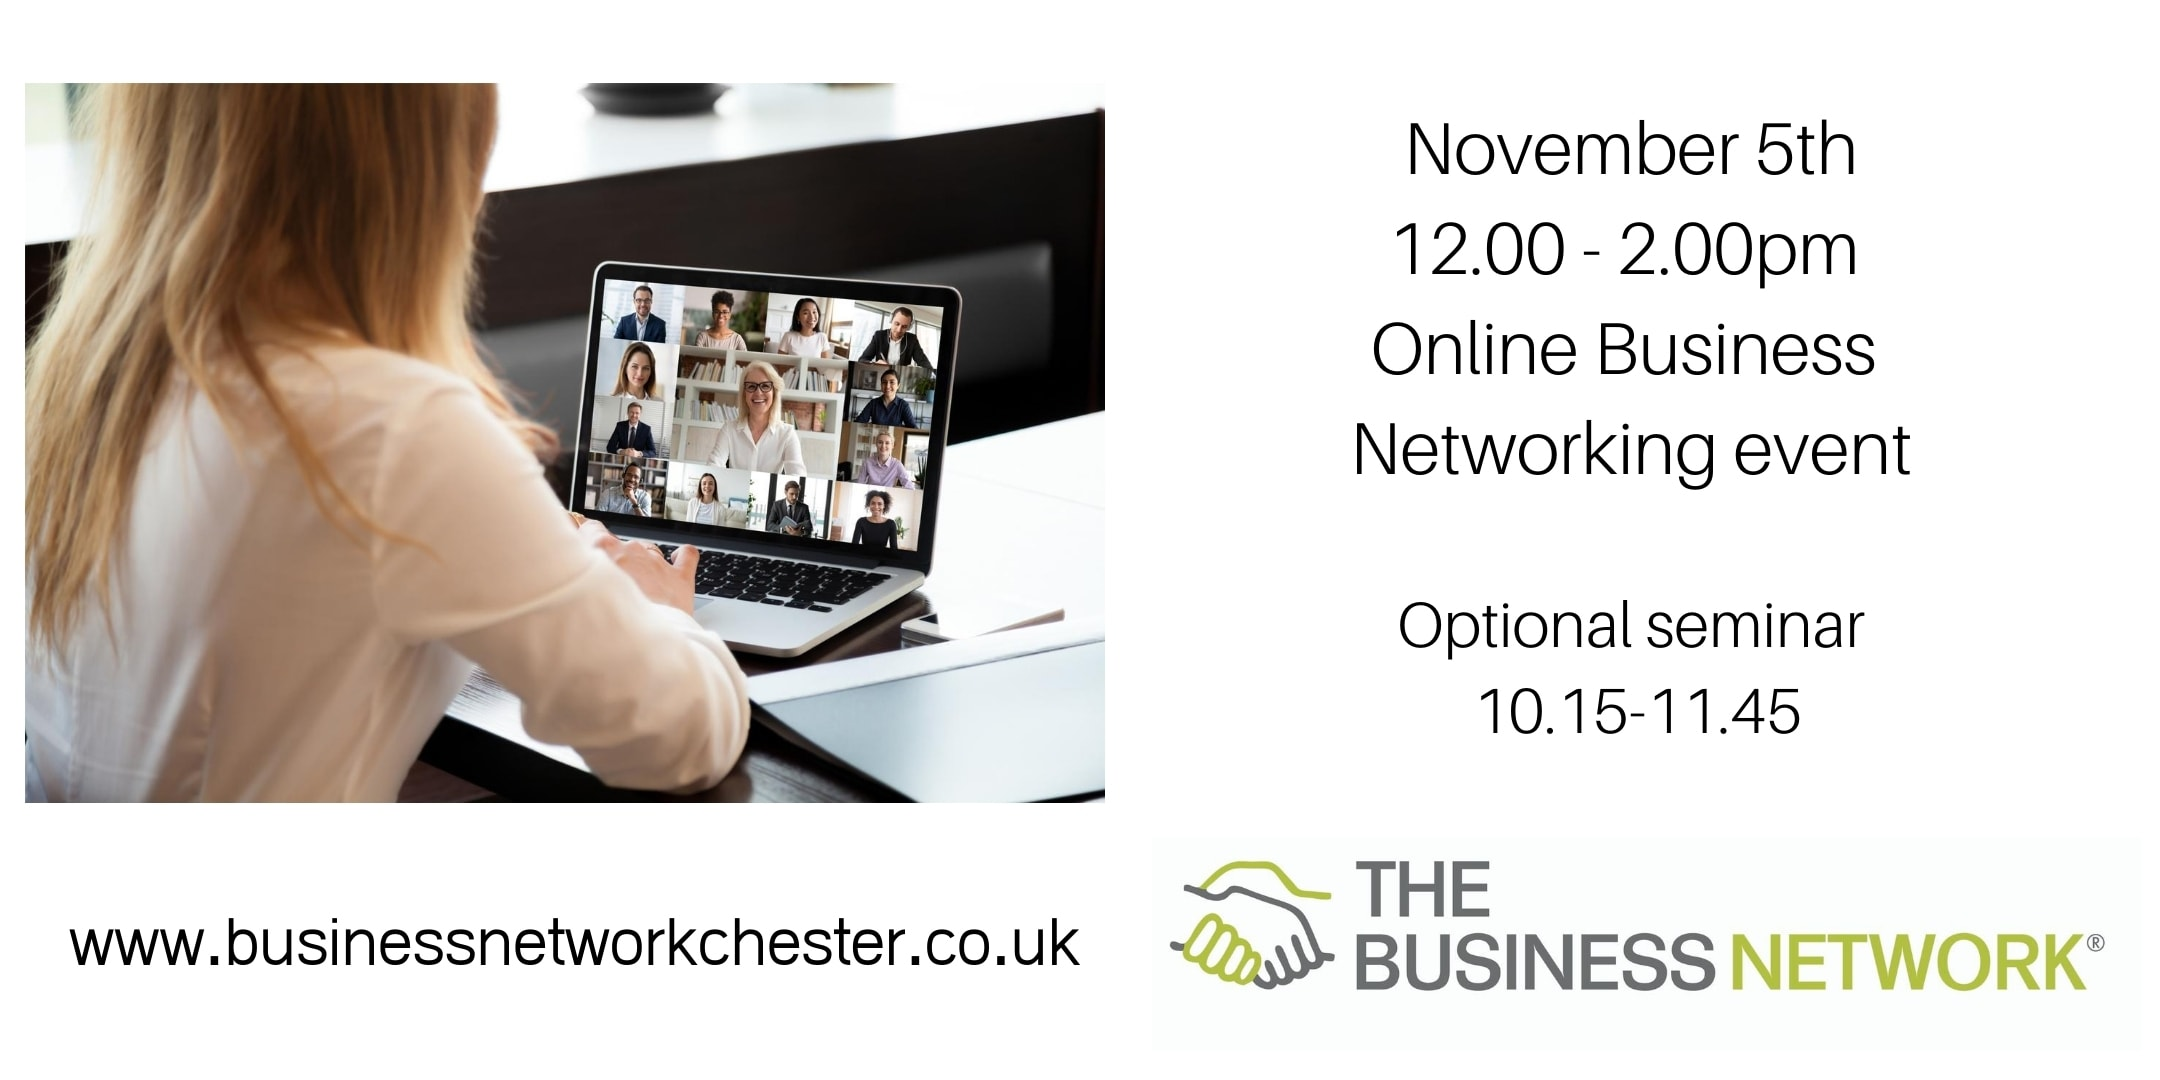 5th November Online Business Networking event